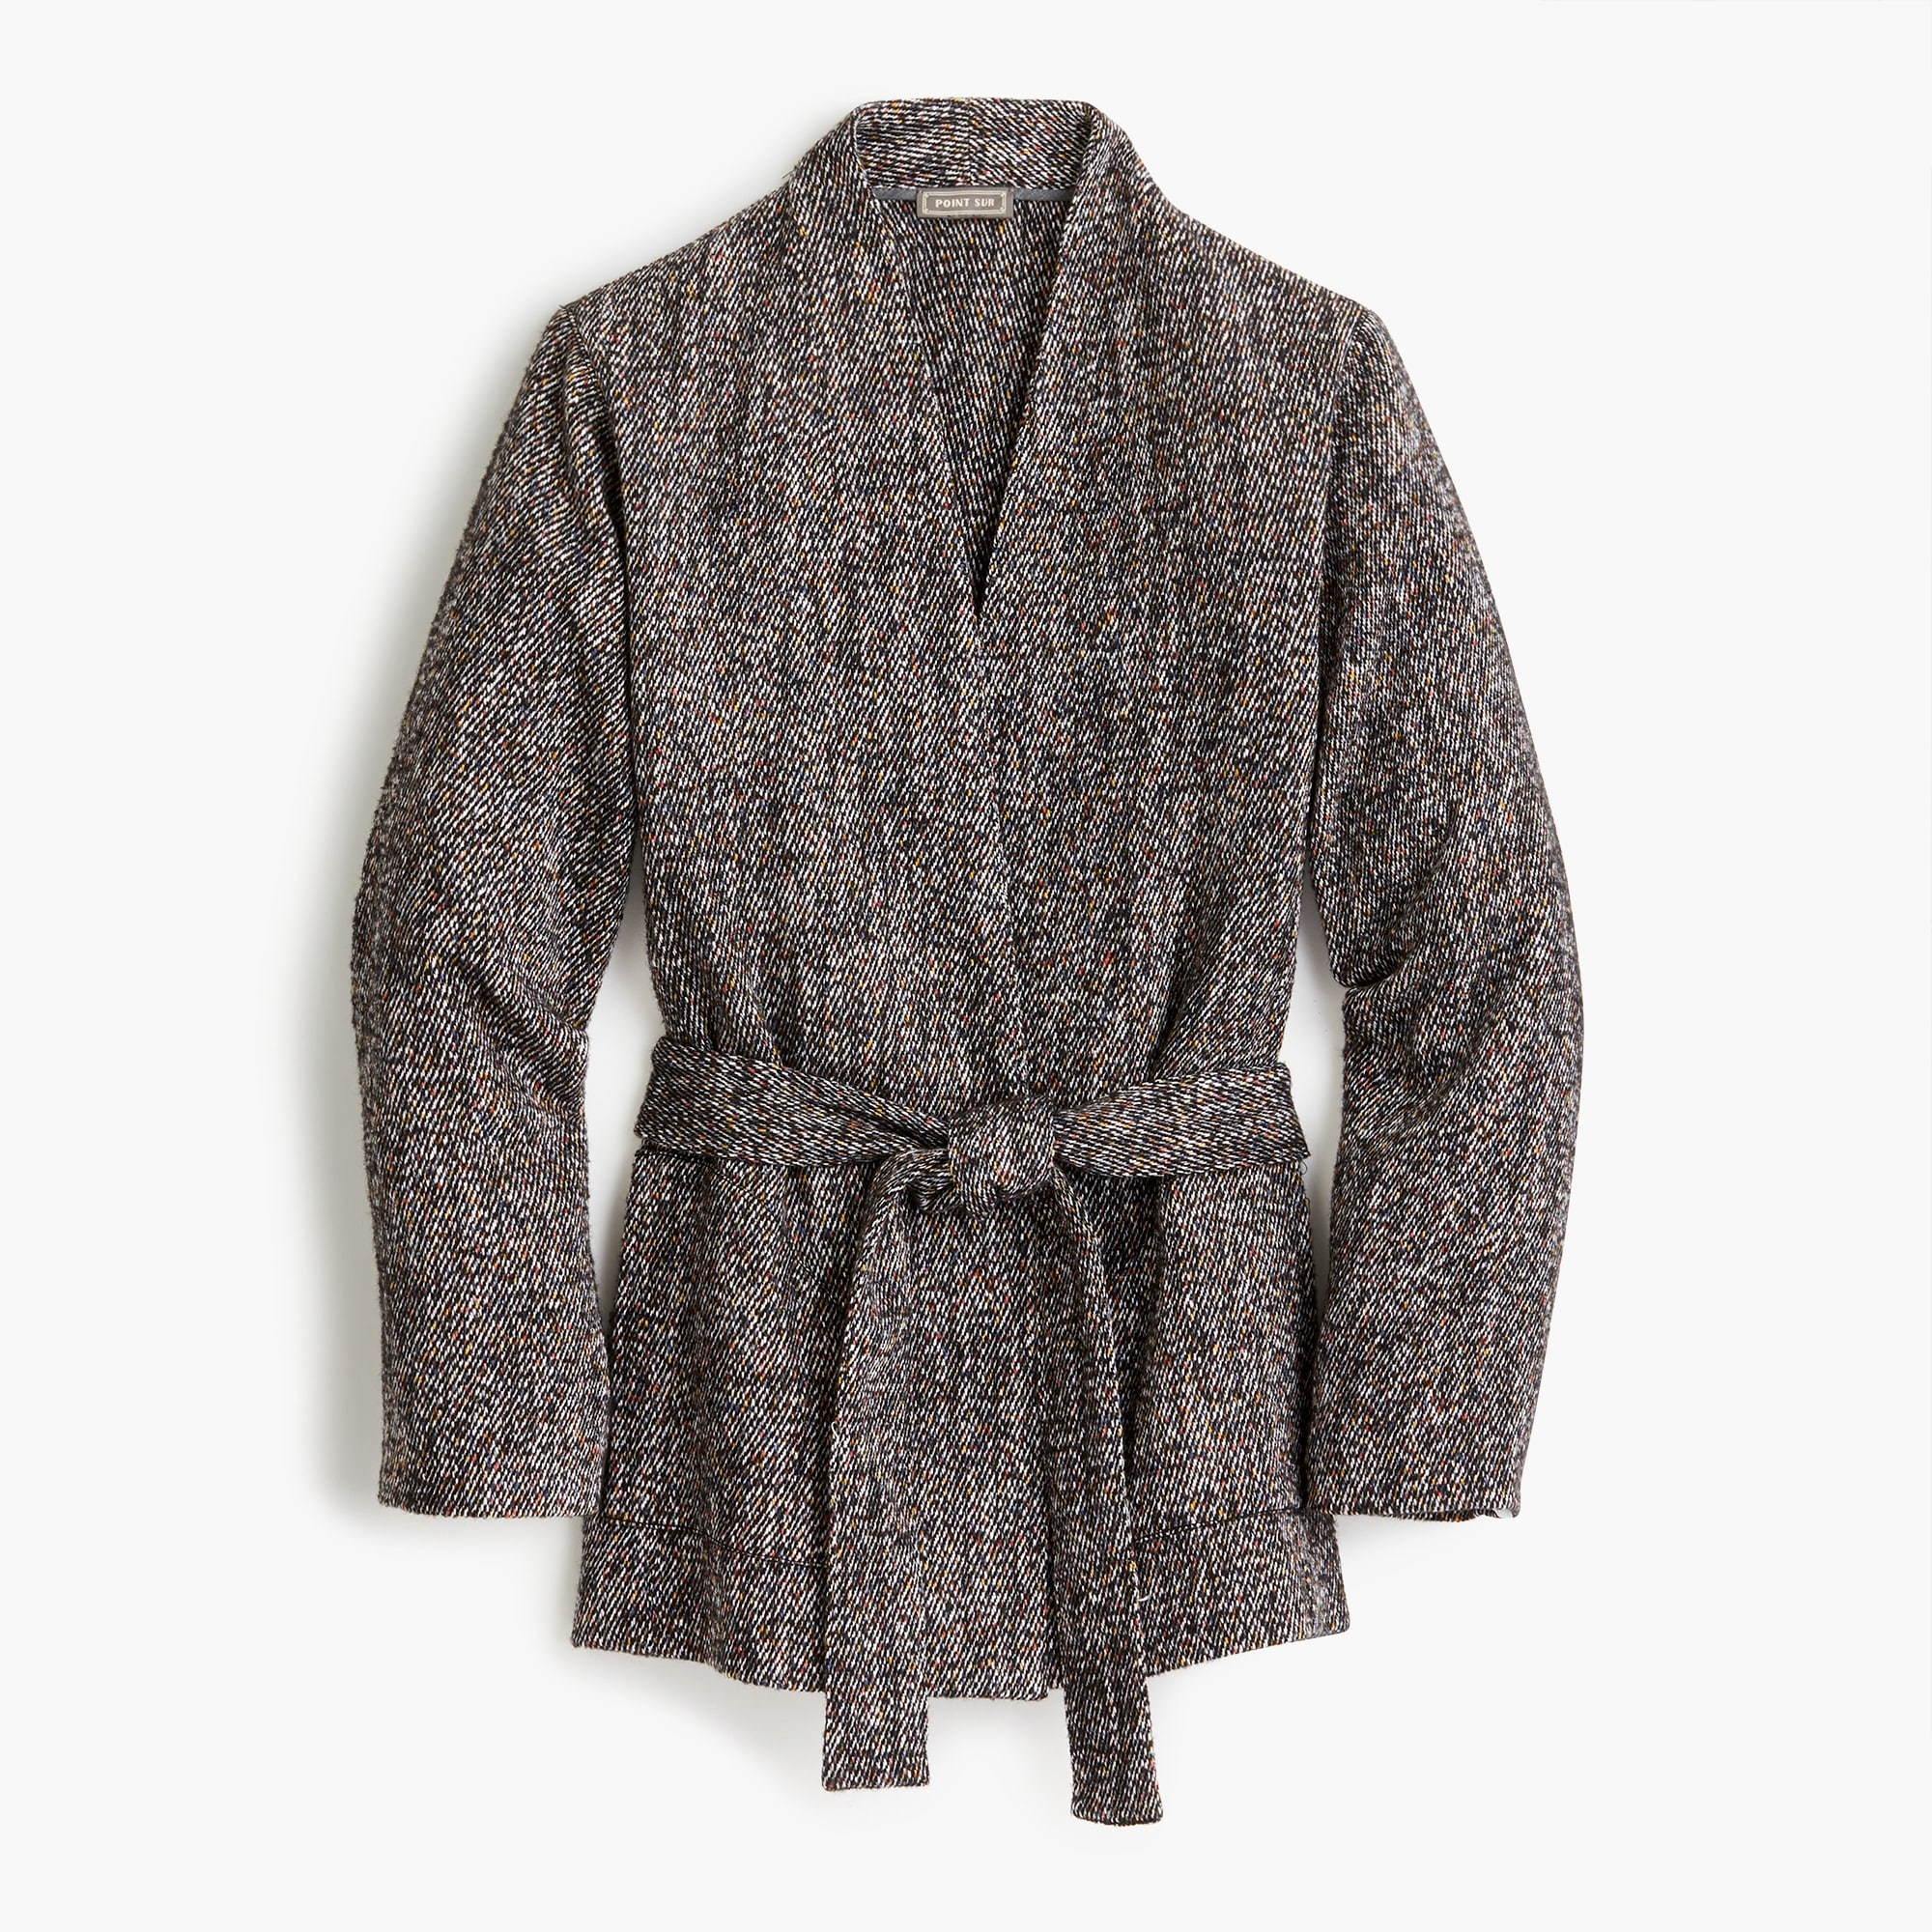 Image 2 for Point Sur wrap jacket in Donegal tweed